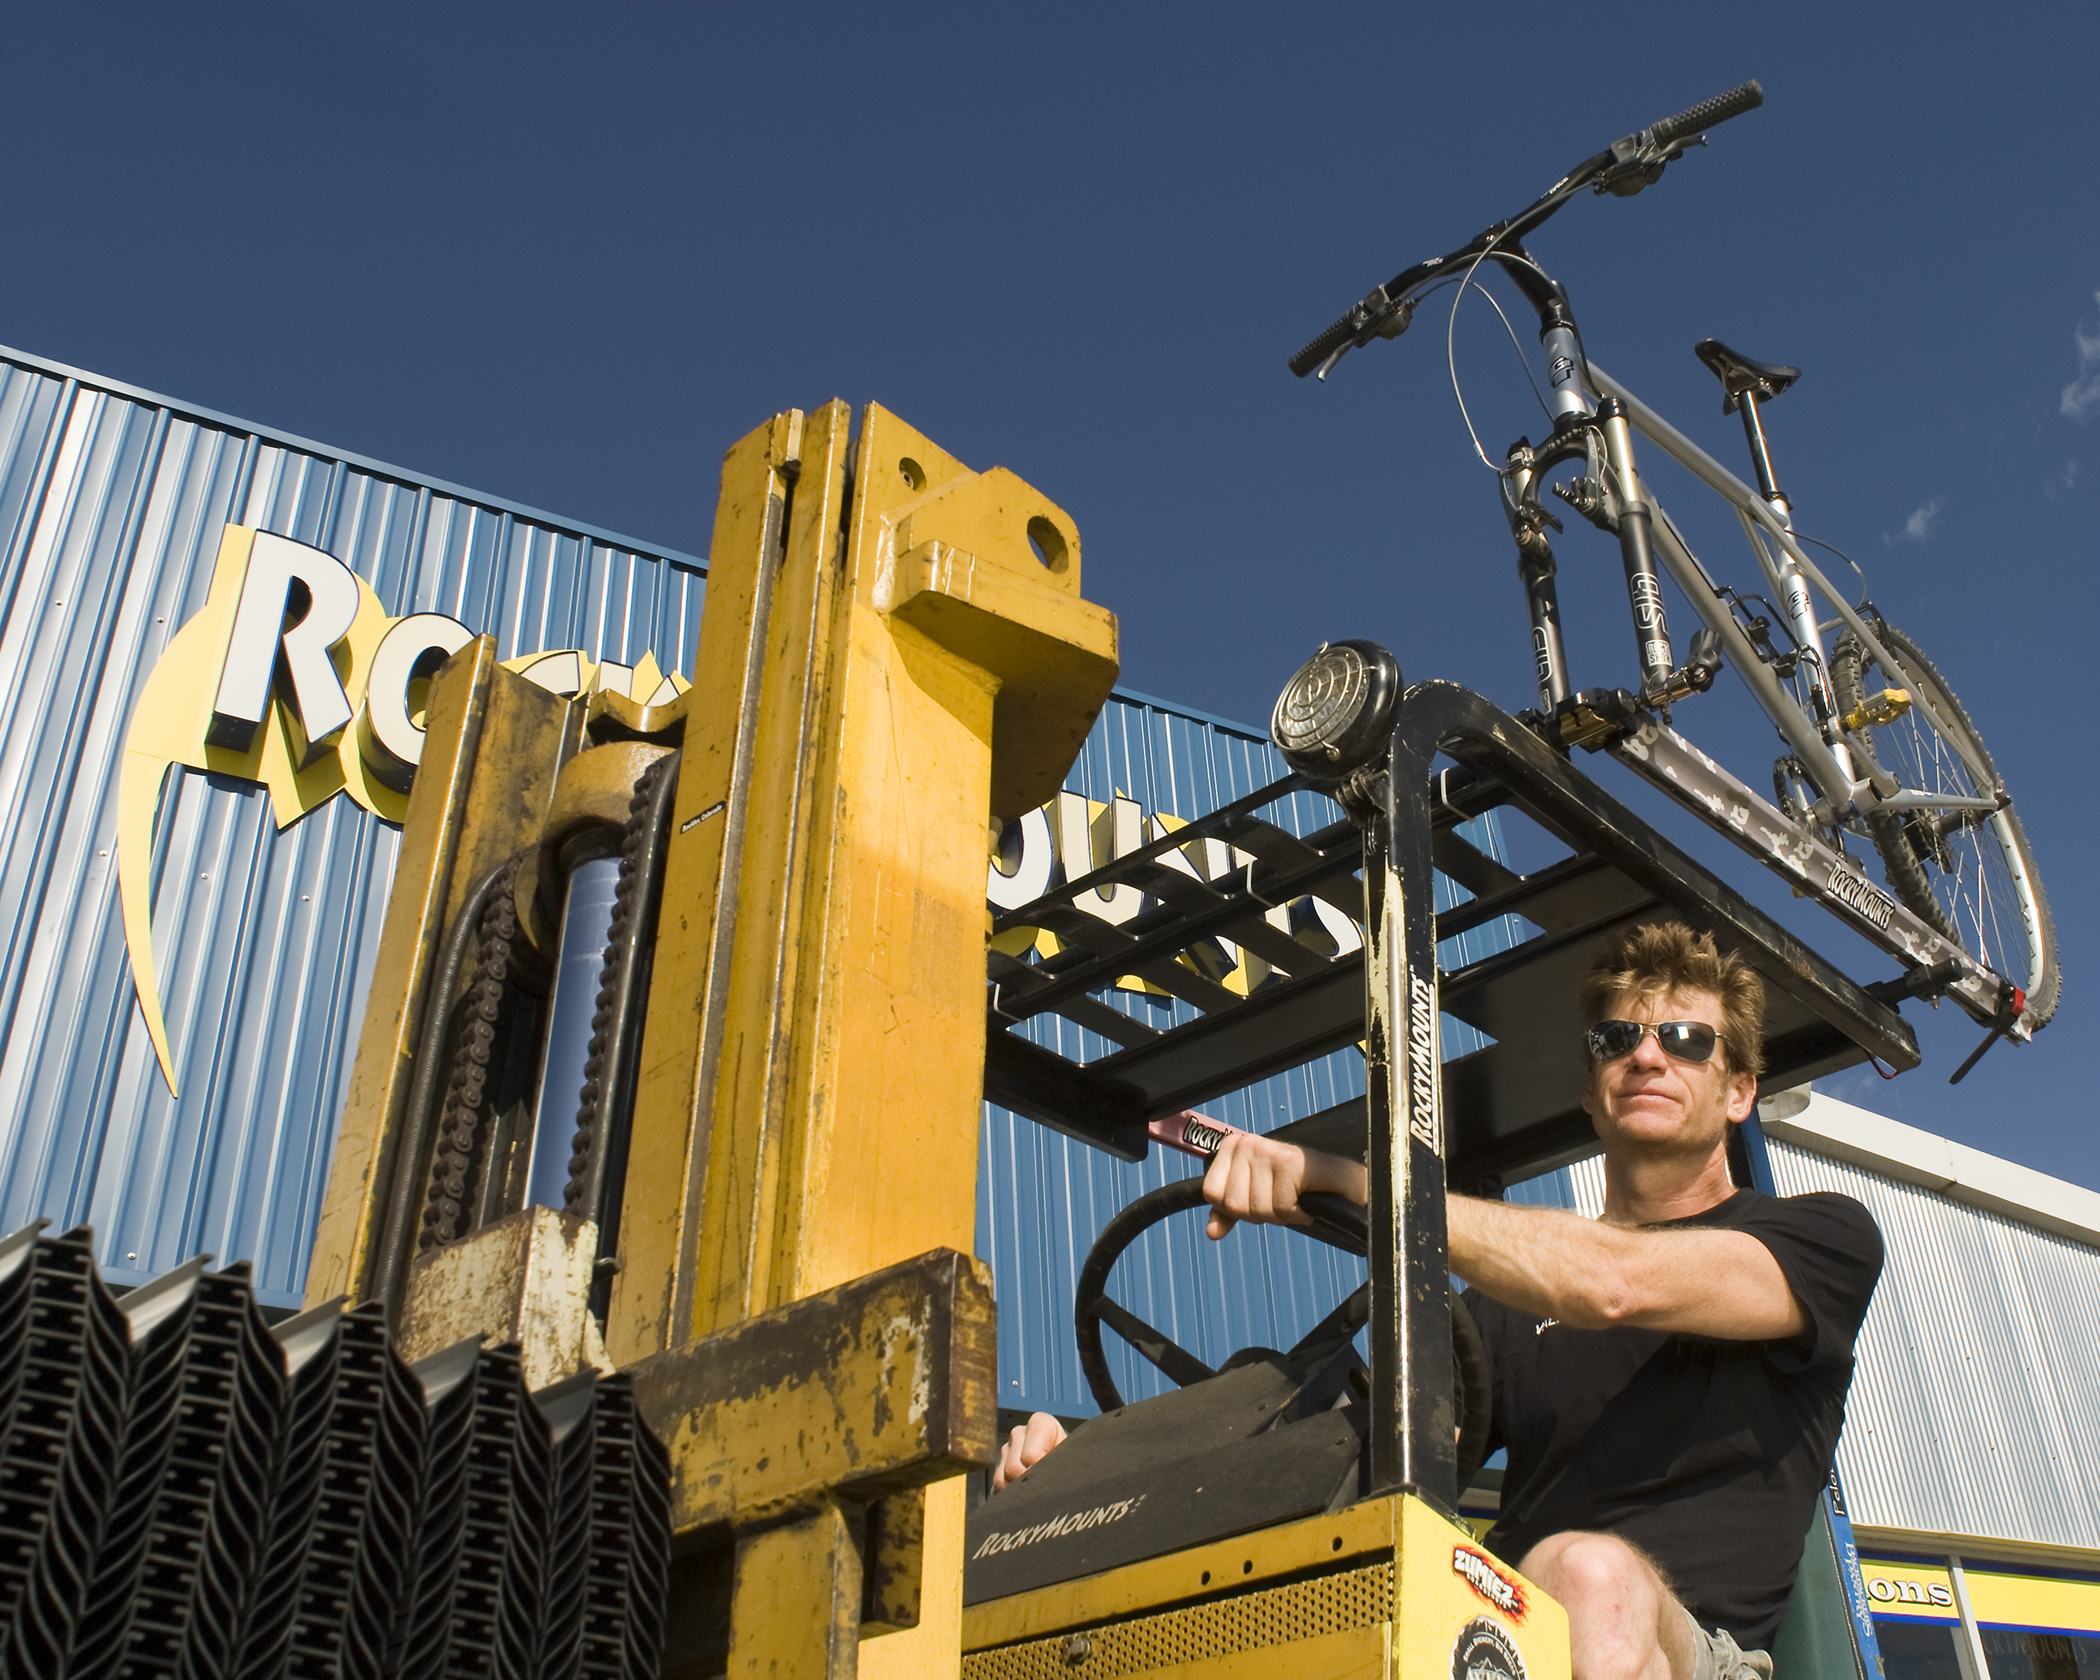 Bobby, his GT and his forklift outside of Rocky Mounts for the My Favorite Bike Portrait Series.